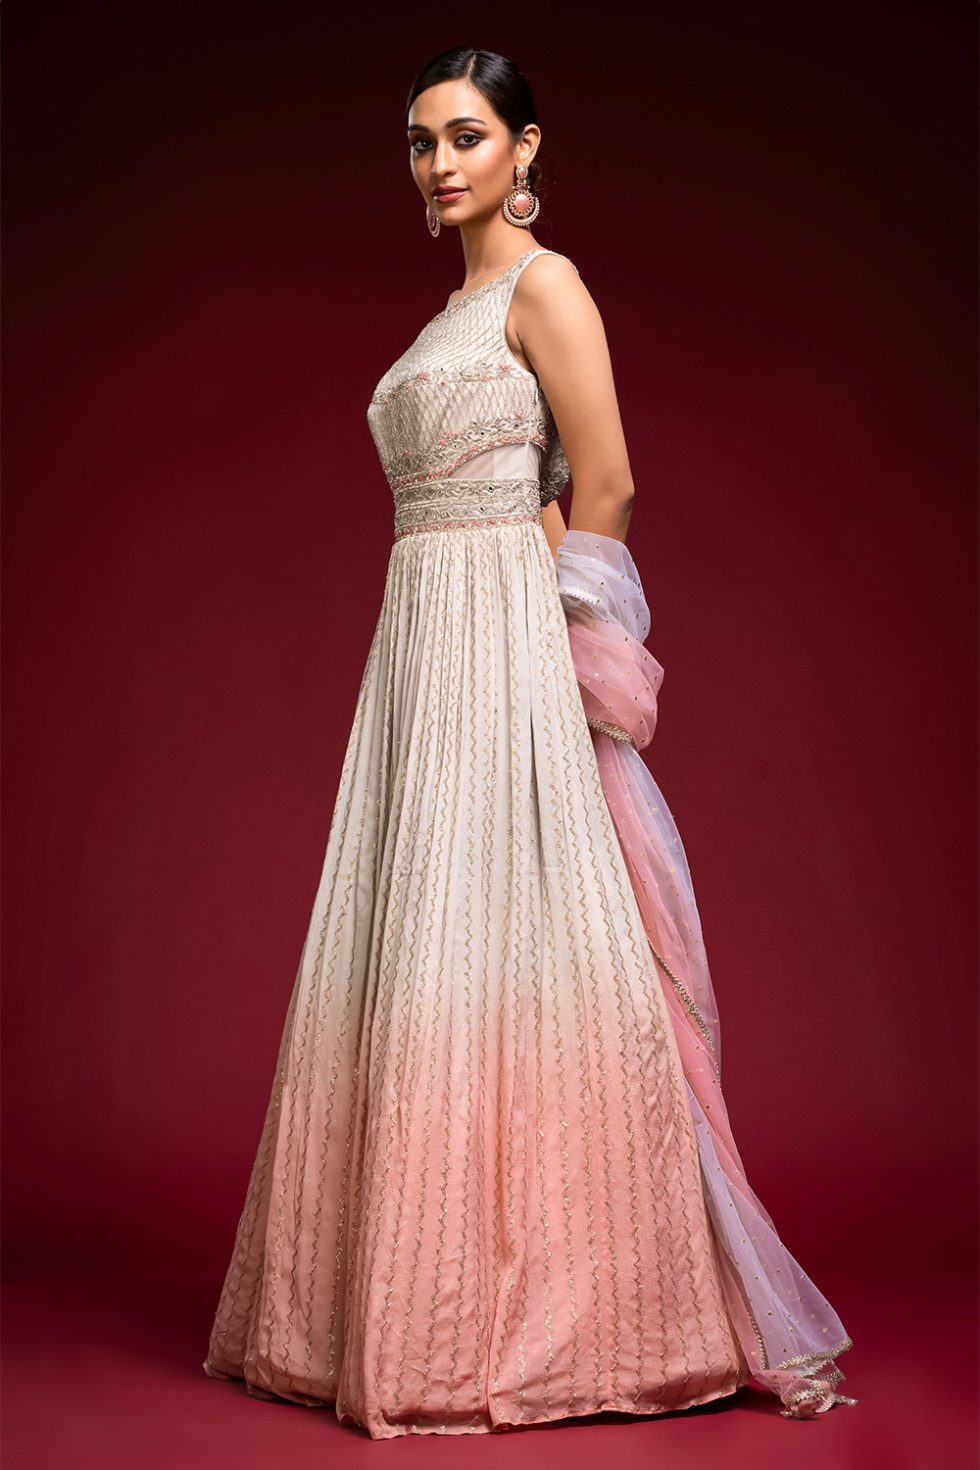 Ombré pastel grey to blush pink gold geometric patterned Anarkali gown set with a hand embroidered cut out bodice paired with a matching shaded dupatta and gold embellishments.